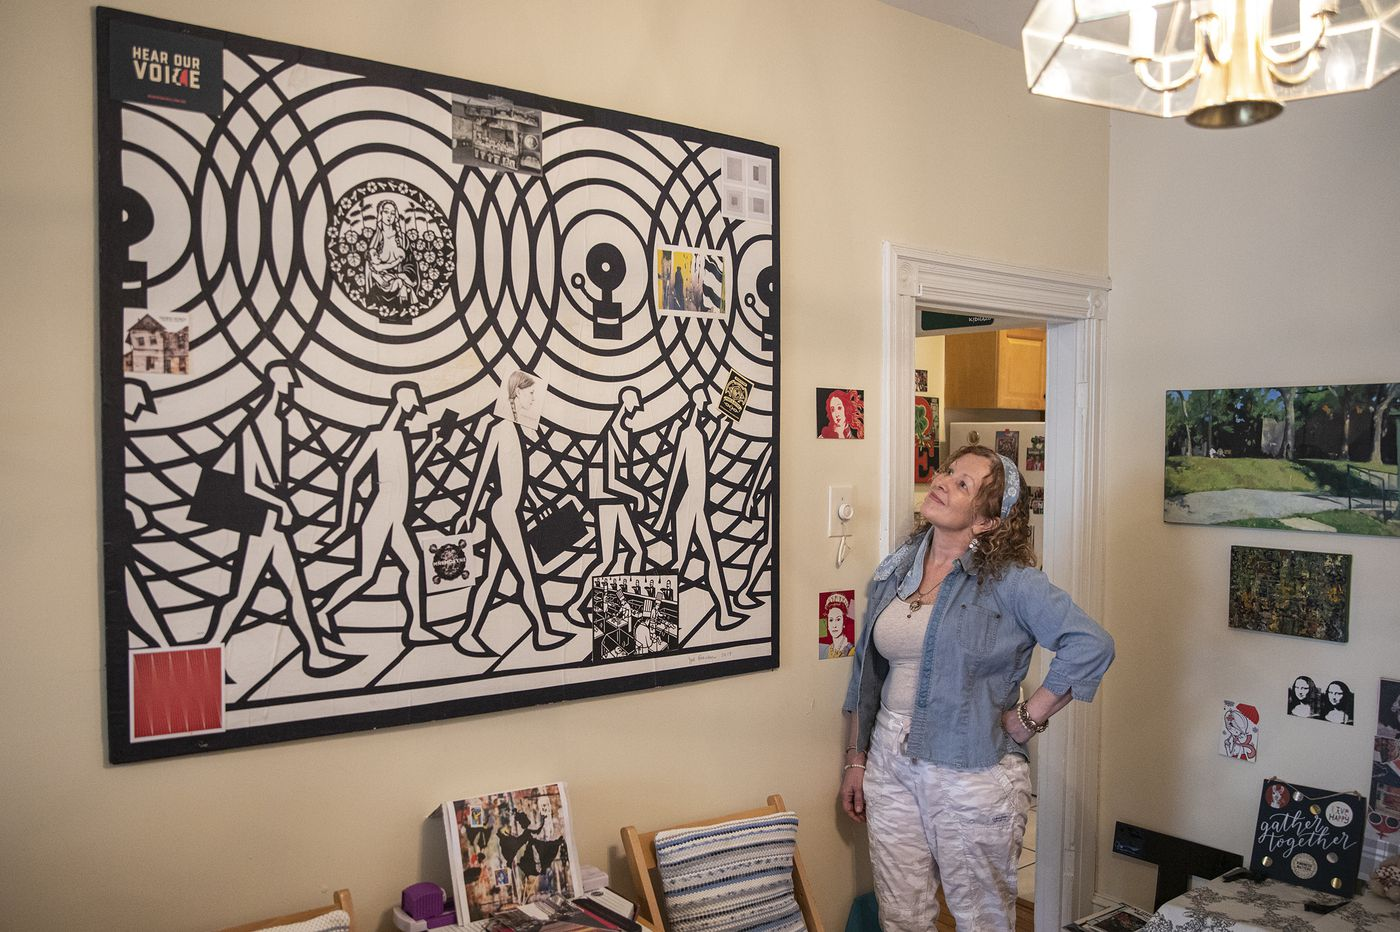 Admirer of local and ethnic art assembles an eclectic collection in Philly home